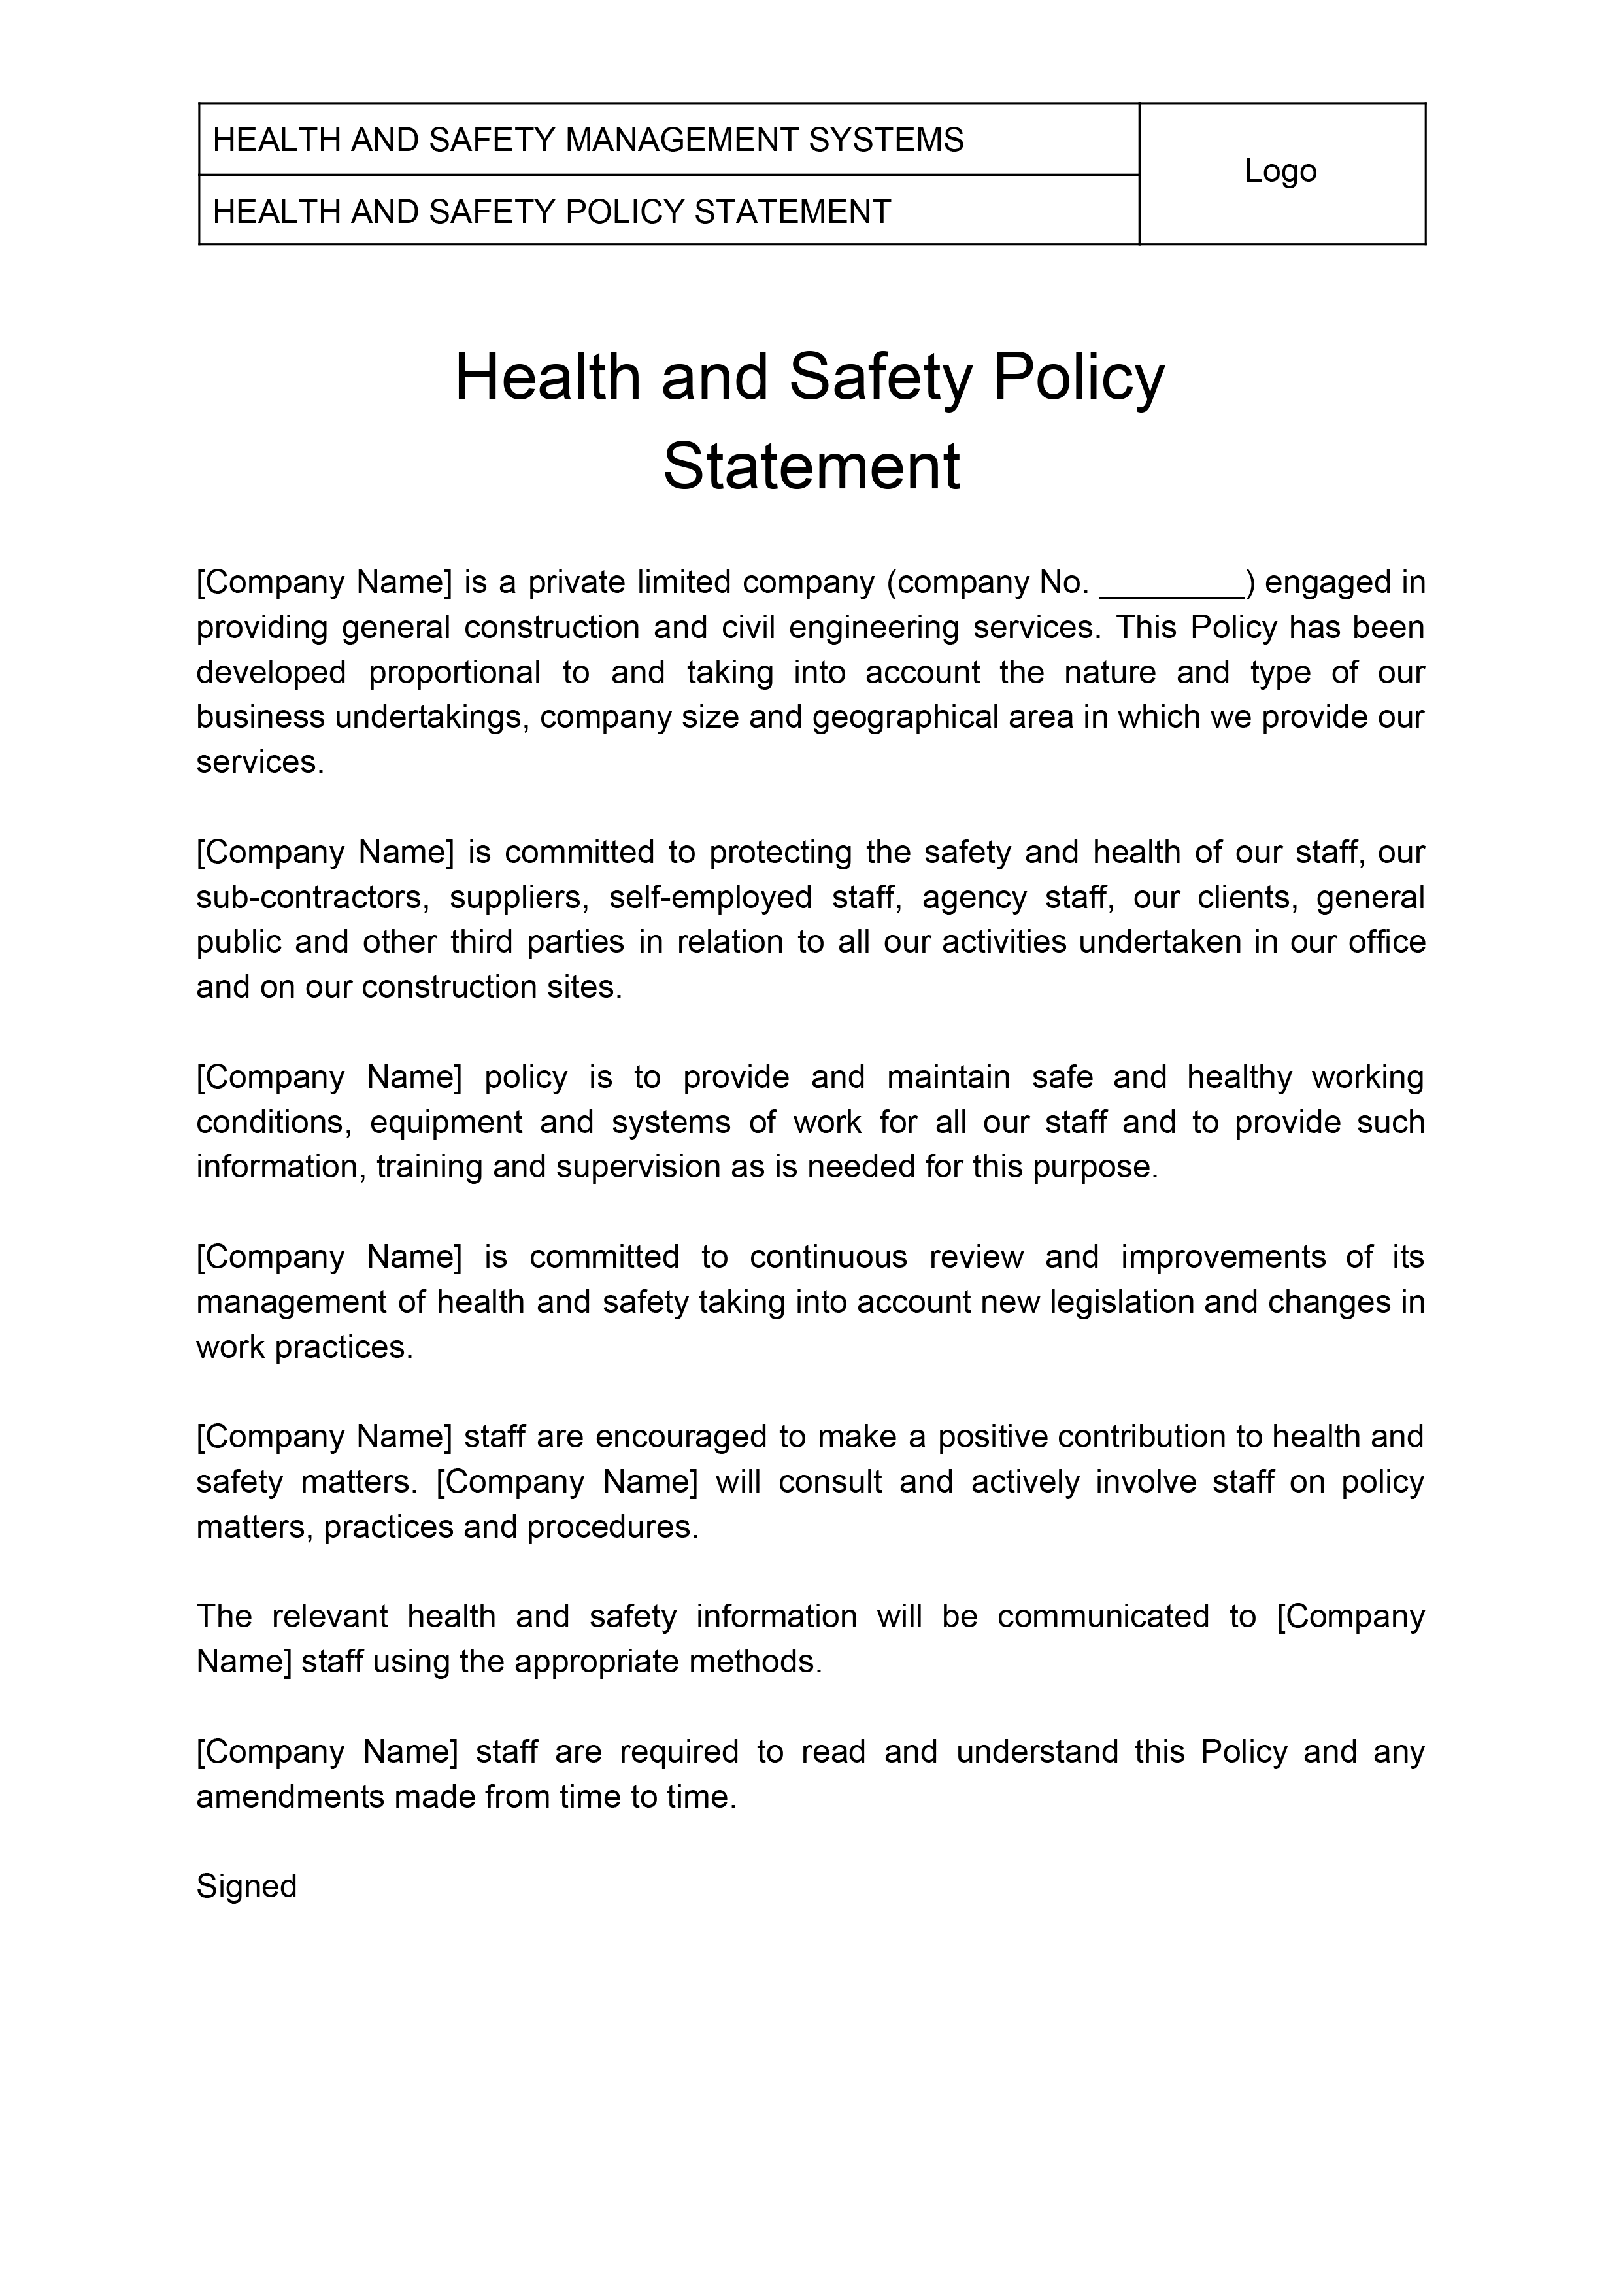 Construction Company Health and Safety Policy Statement in